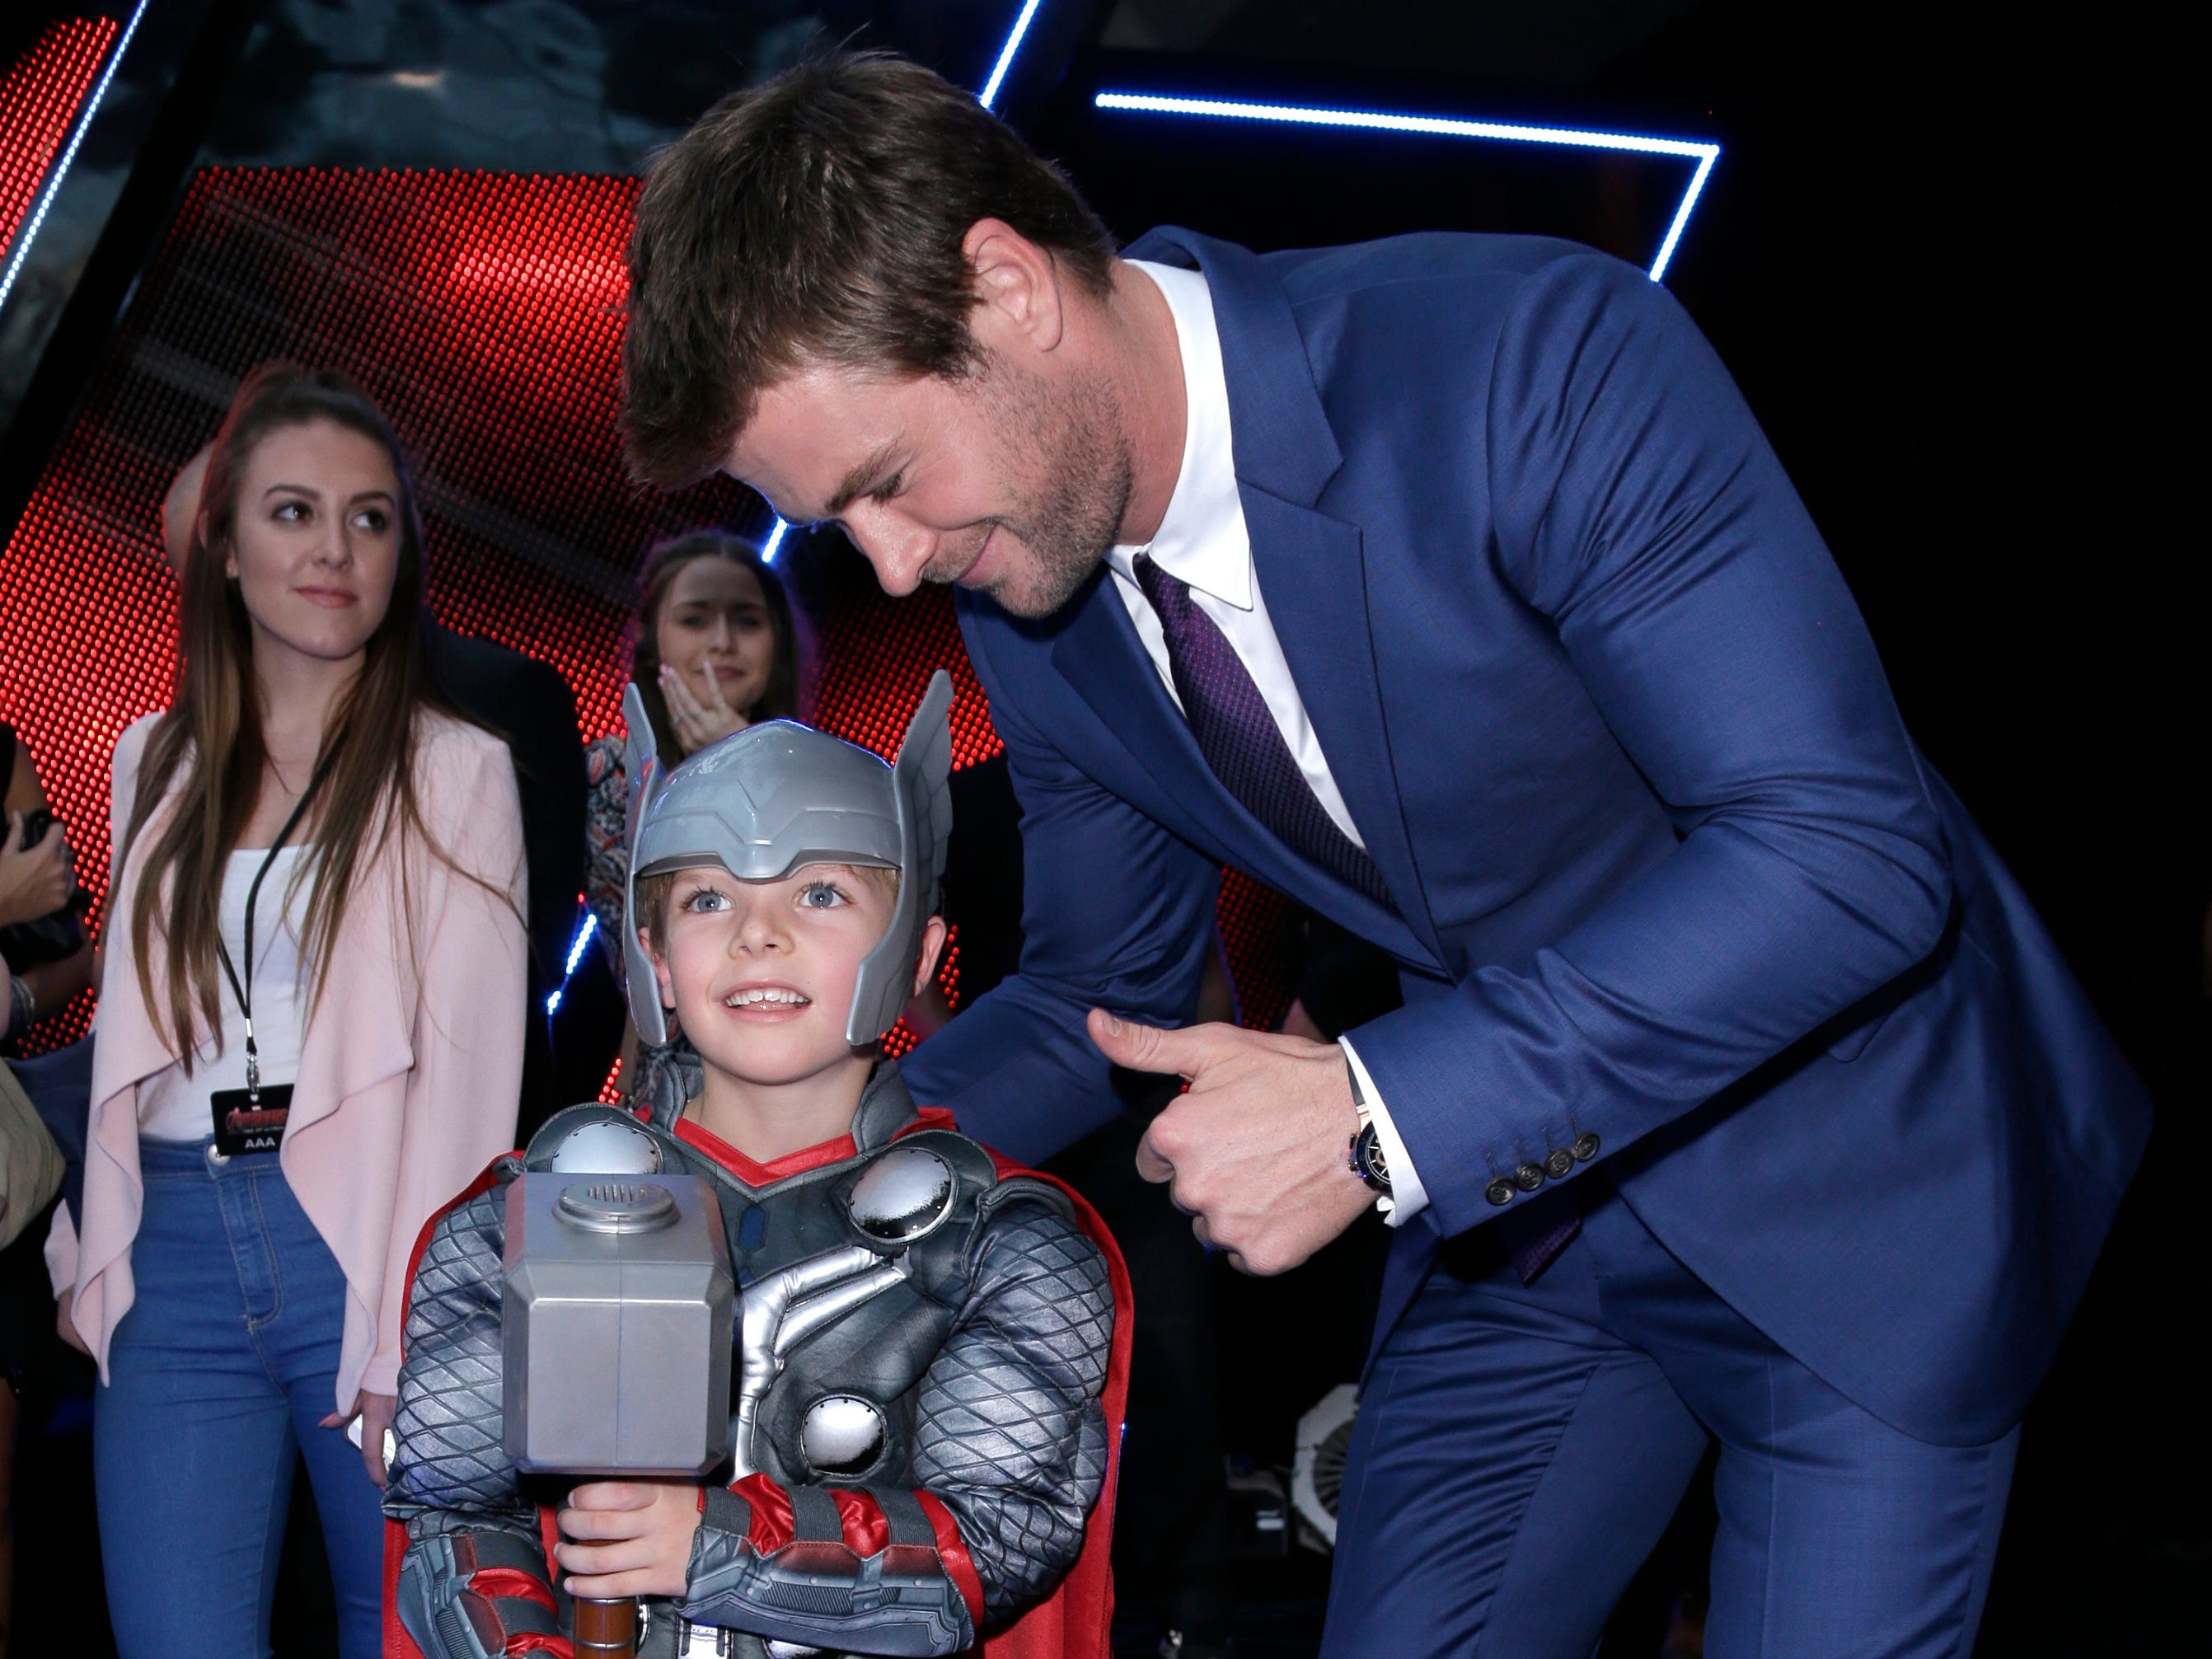 Chris Hemsworth poses with a young child dressed as the character Thor at the premiere for the film 'The Avengers Age of Ultron' in London, Tuesday, 21 April, 2015. (Photo by Joel Ryan/Invision/AP) ORG XMIT: LENT119